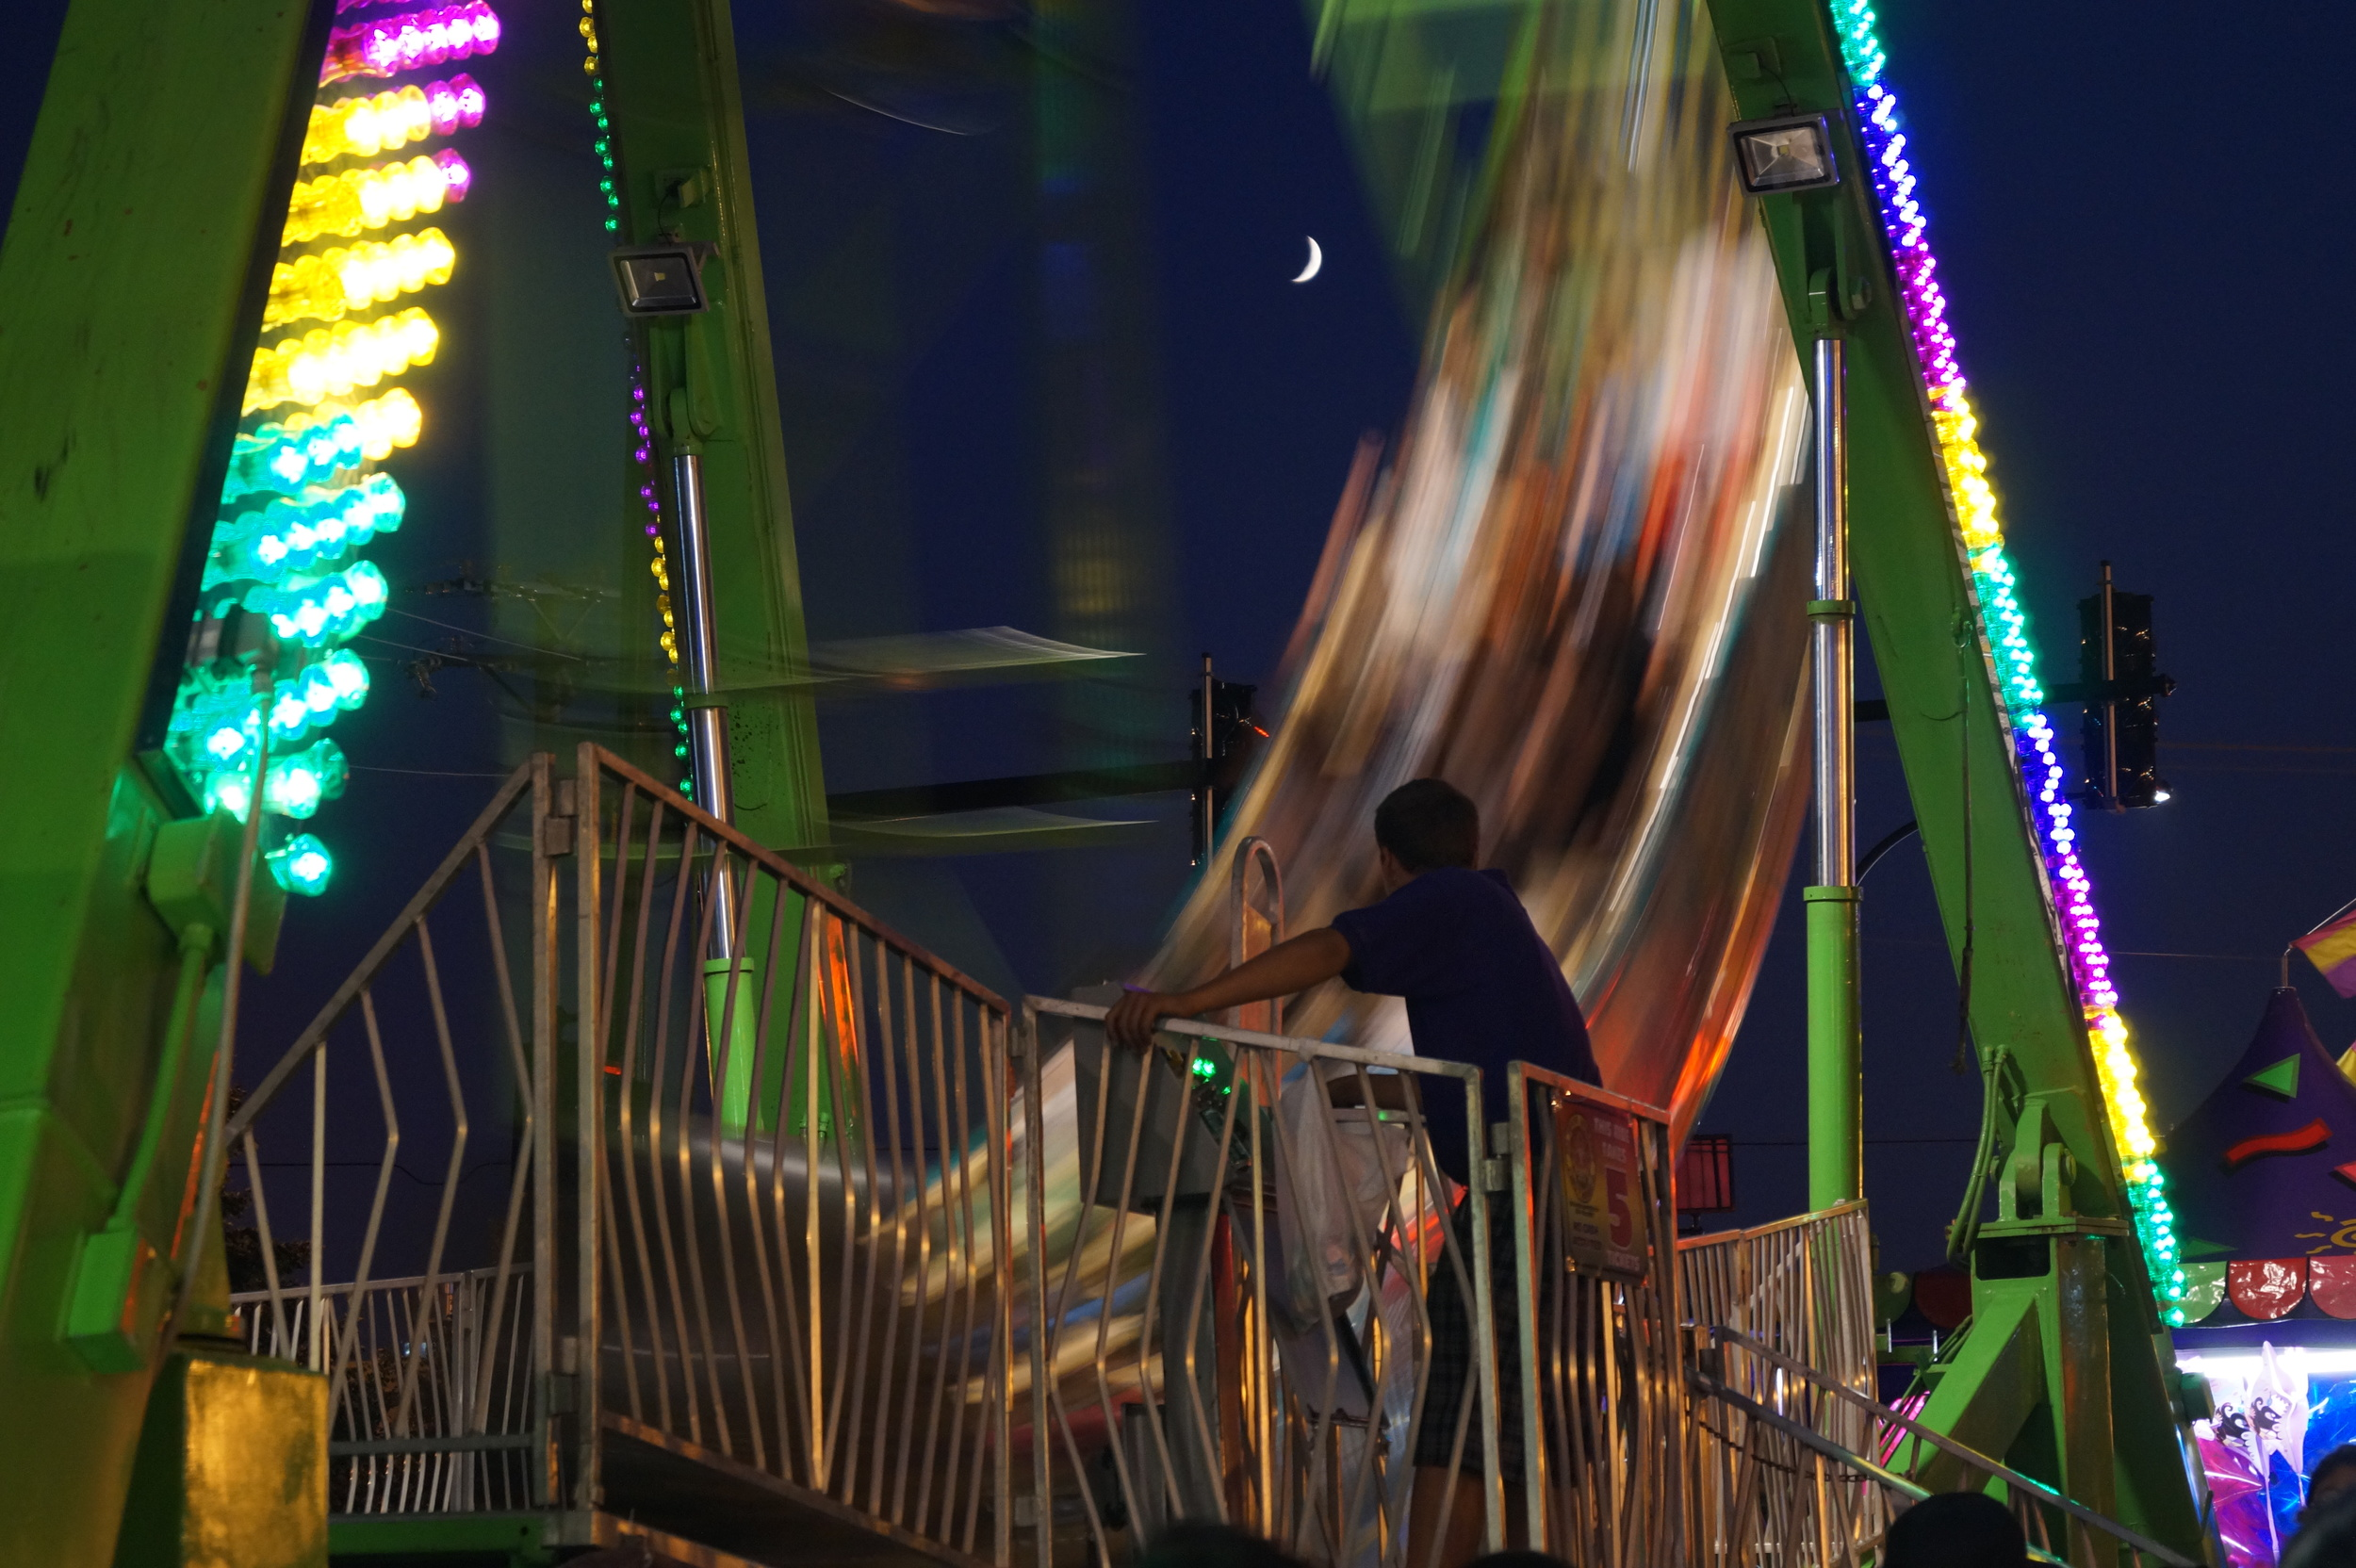 Mechanical Ride at night